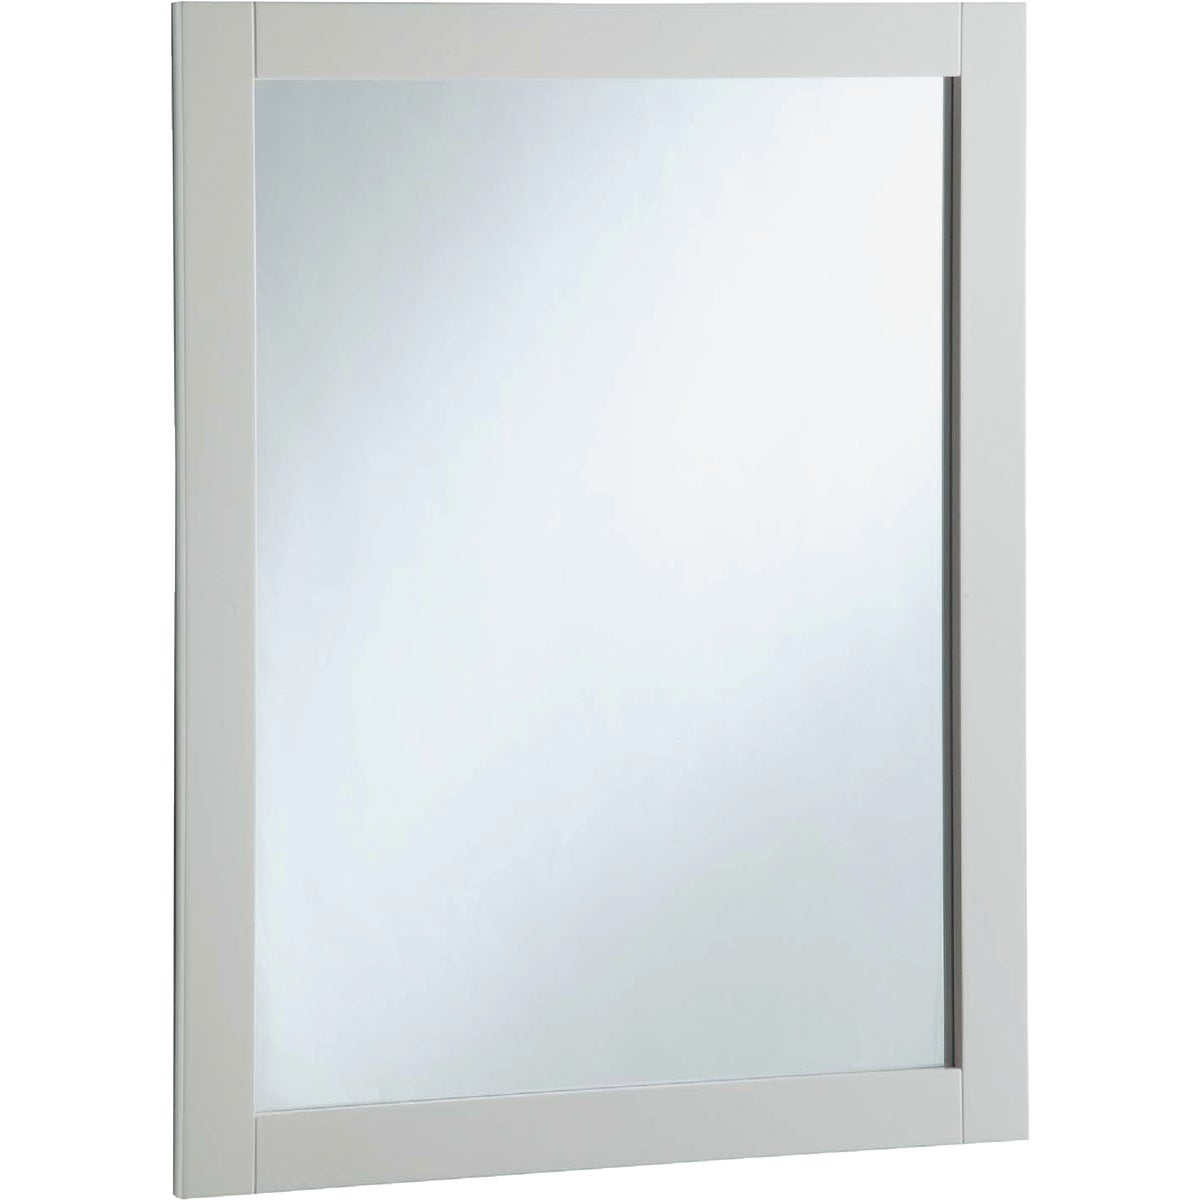 20X28 WHITE WALL MIRROR